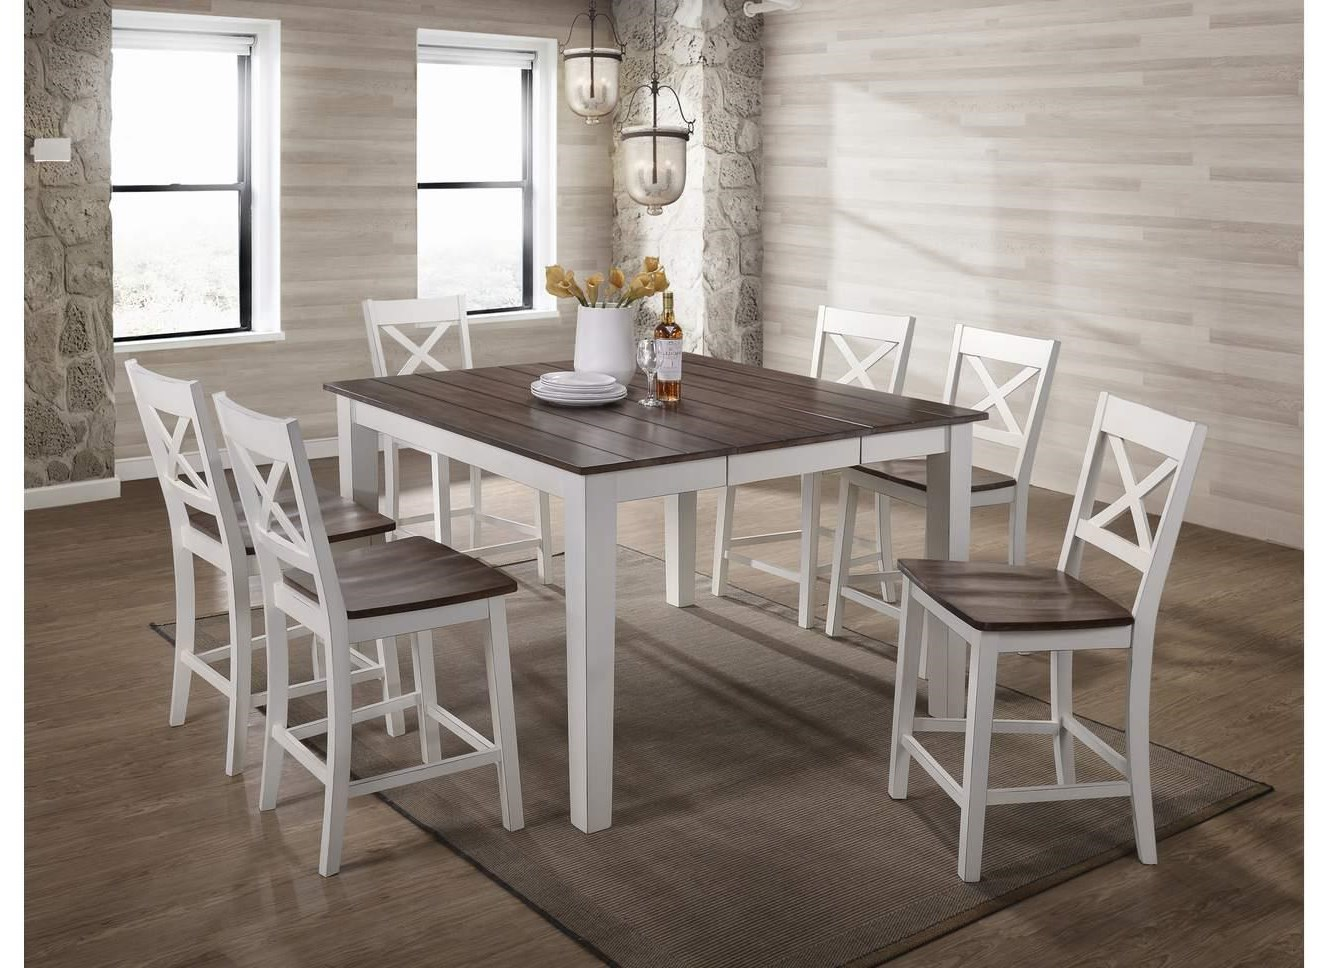 5057 Table and Stools by United Furniture Industries at Value City Furniture